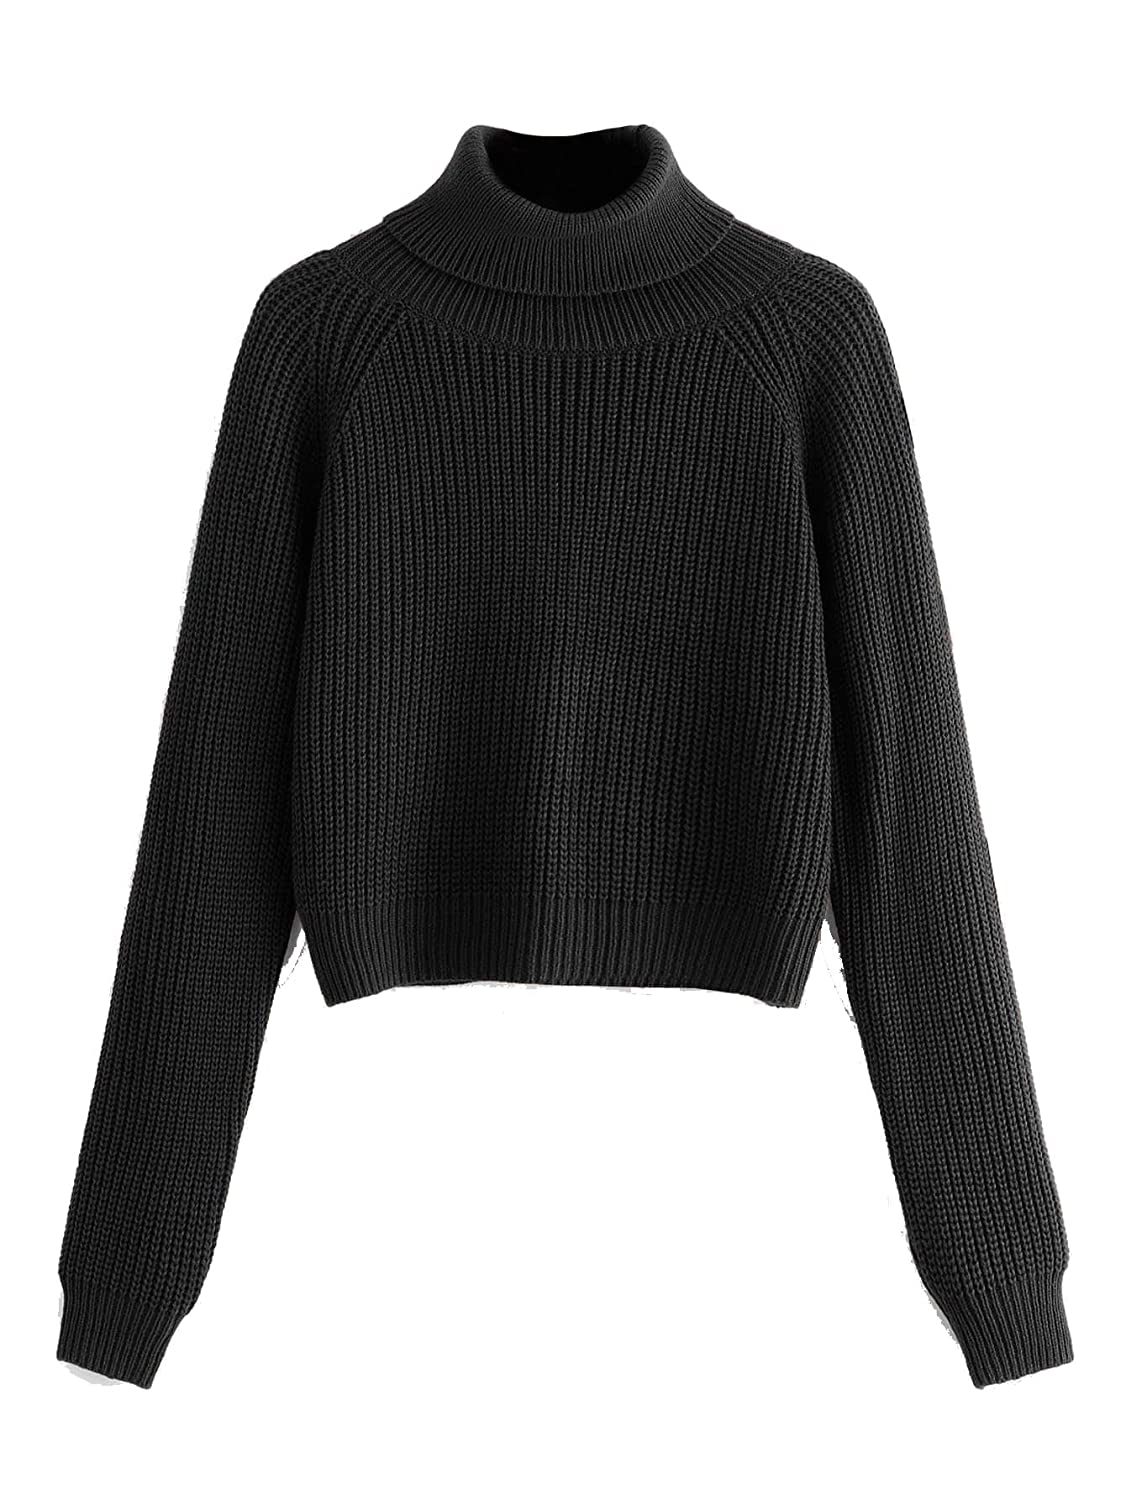 8ab4e4b3b74384 Milumia Turtleneck Winter Sweaters Long Sleeves Fitted Crop Sweater Fall  Fashion Sexy Wear at Amazon Women s Clothing store